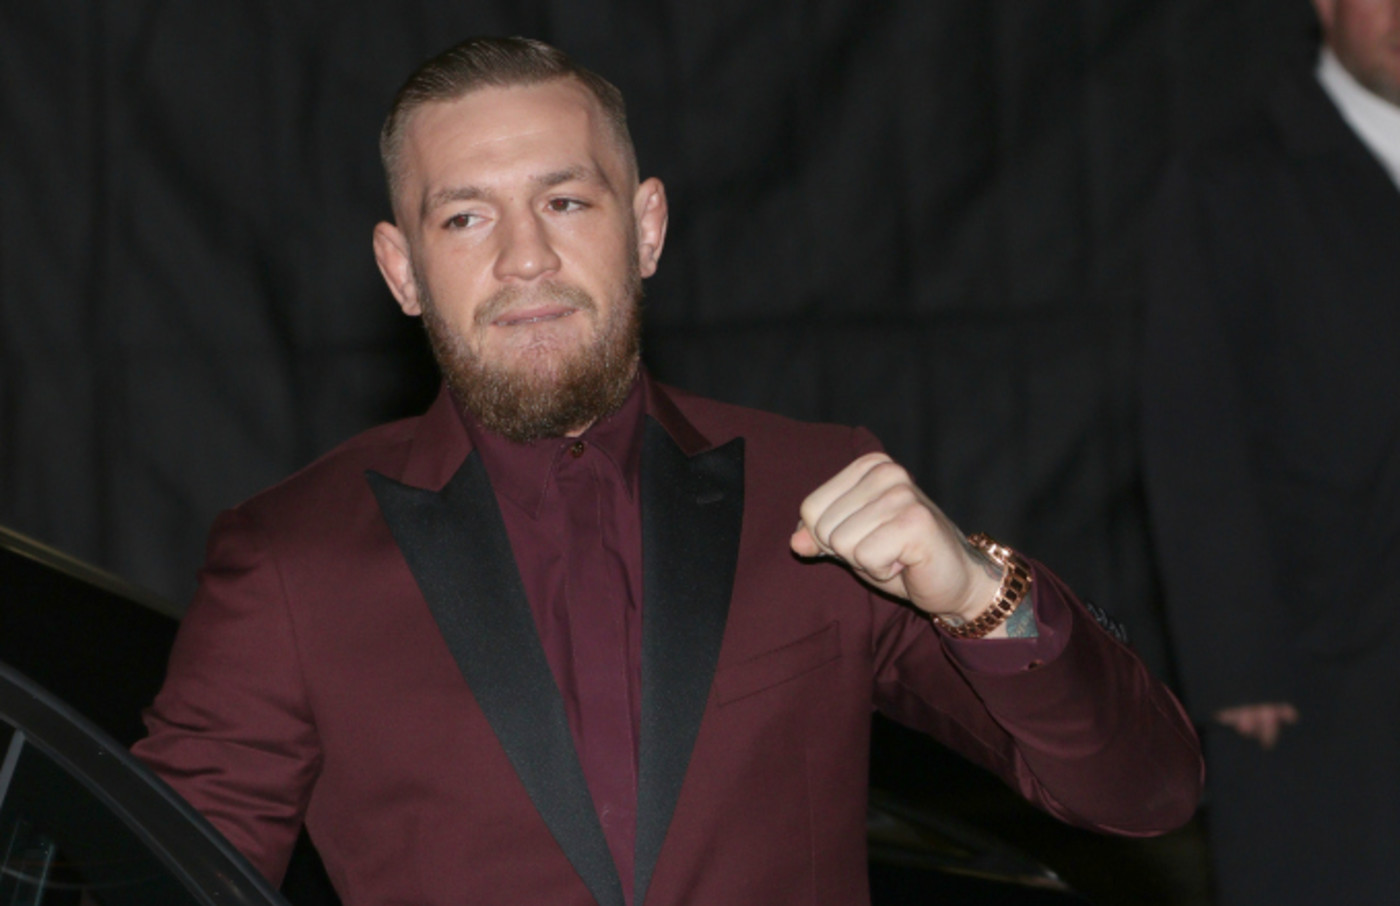 Conor McGregor attending The British Fashion Awards